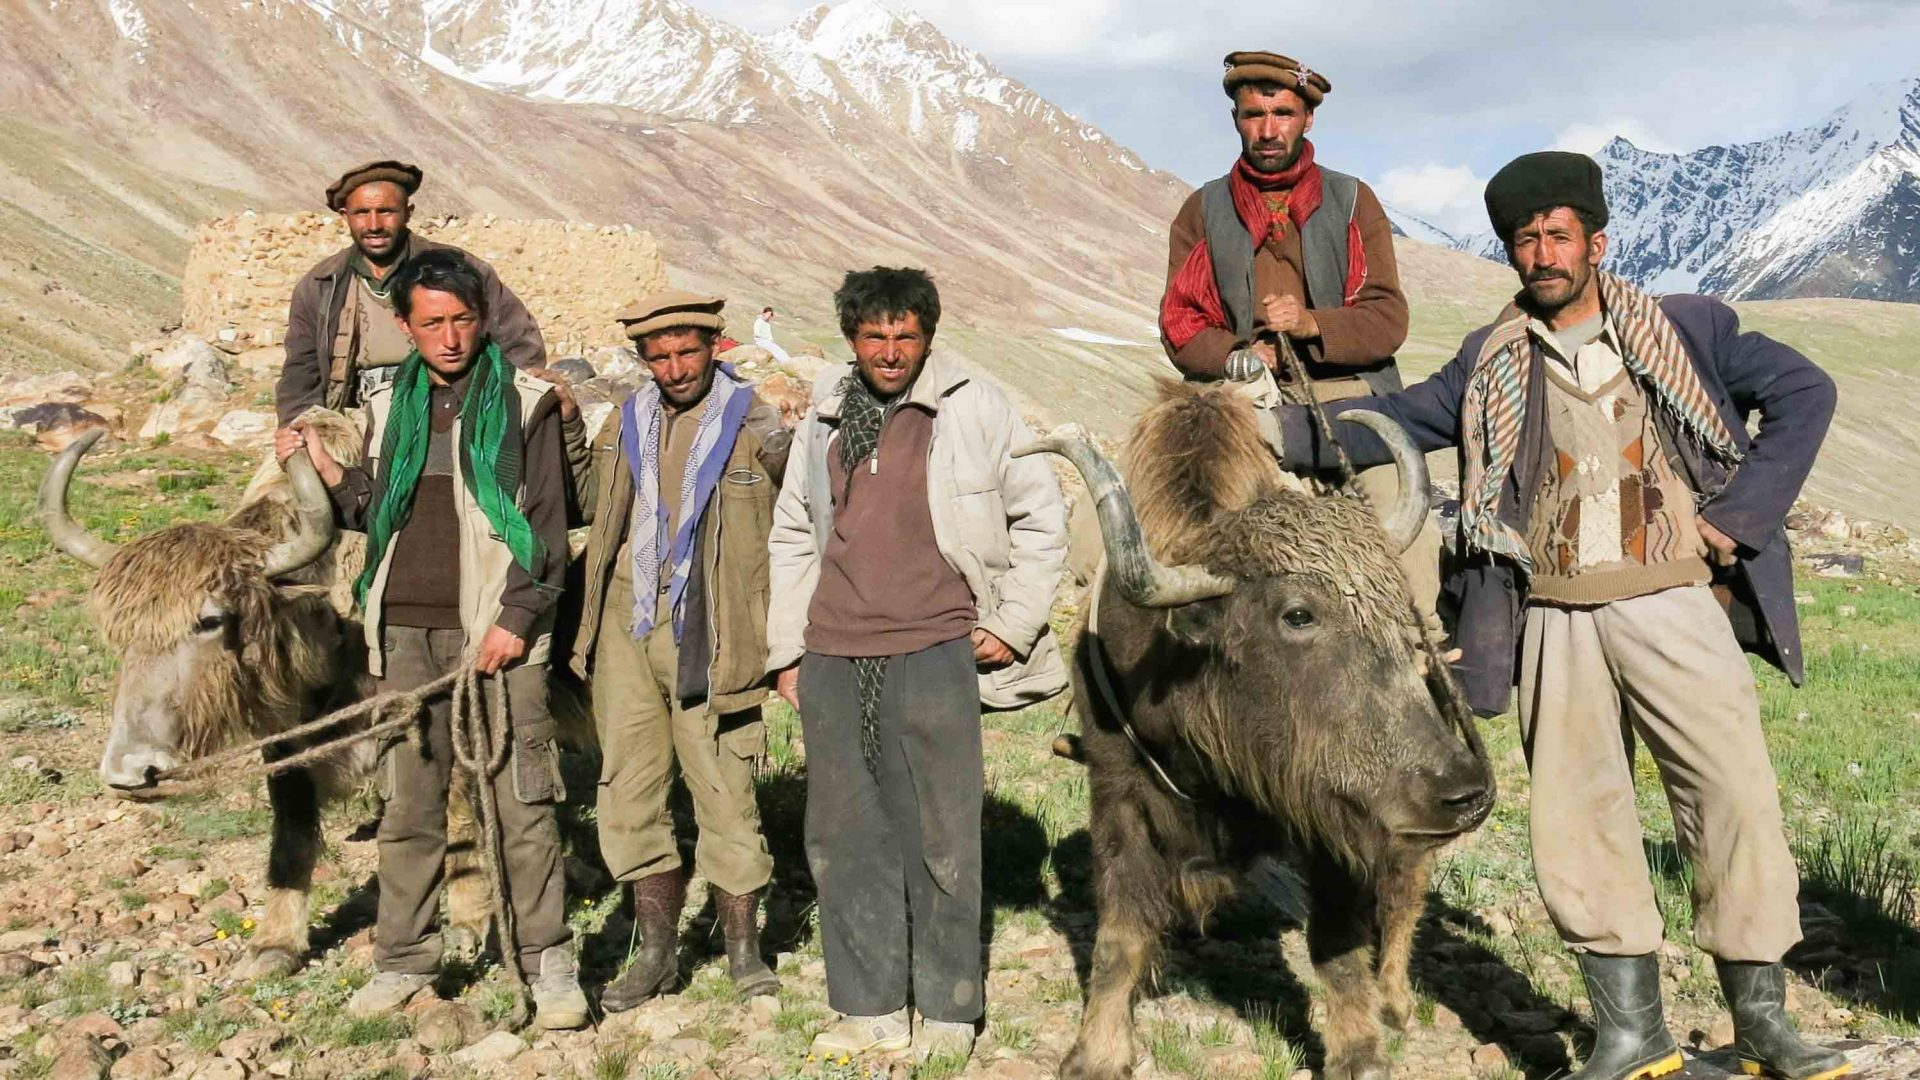 Wakhan is home to around 10,000 nomadic people of the Wakhi and Kyrghiz tribes; here, a group poses with their yaks.